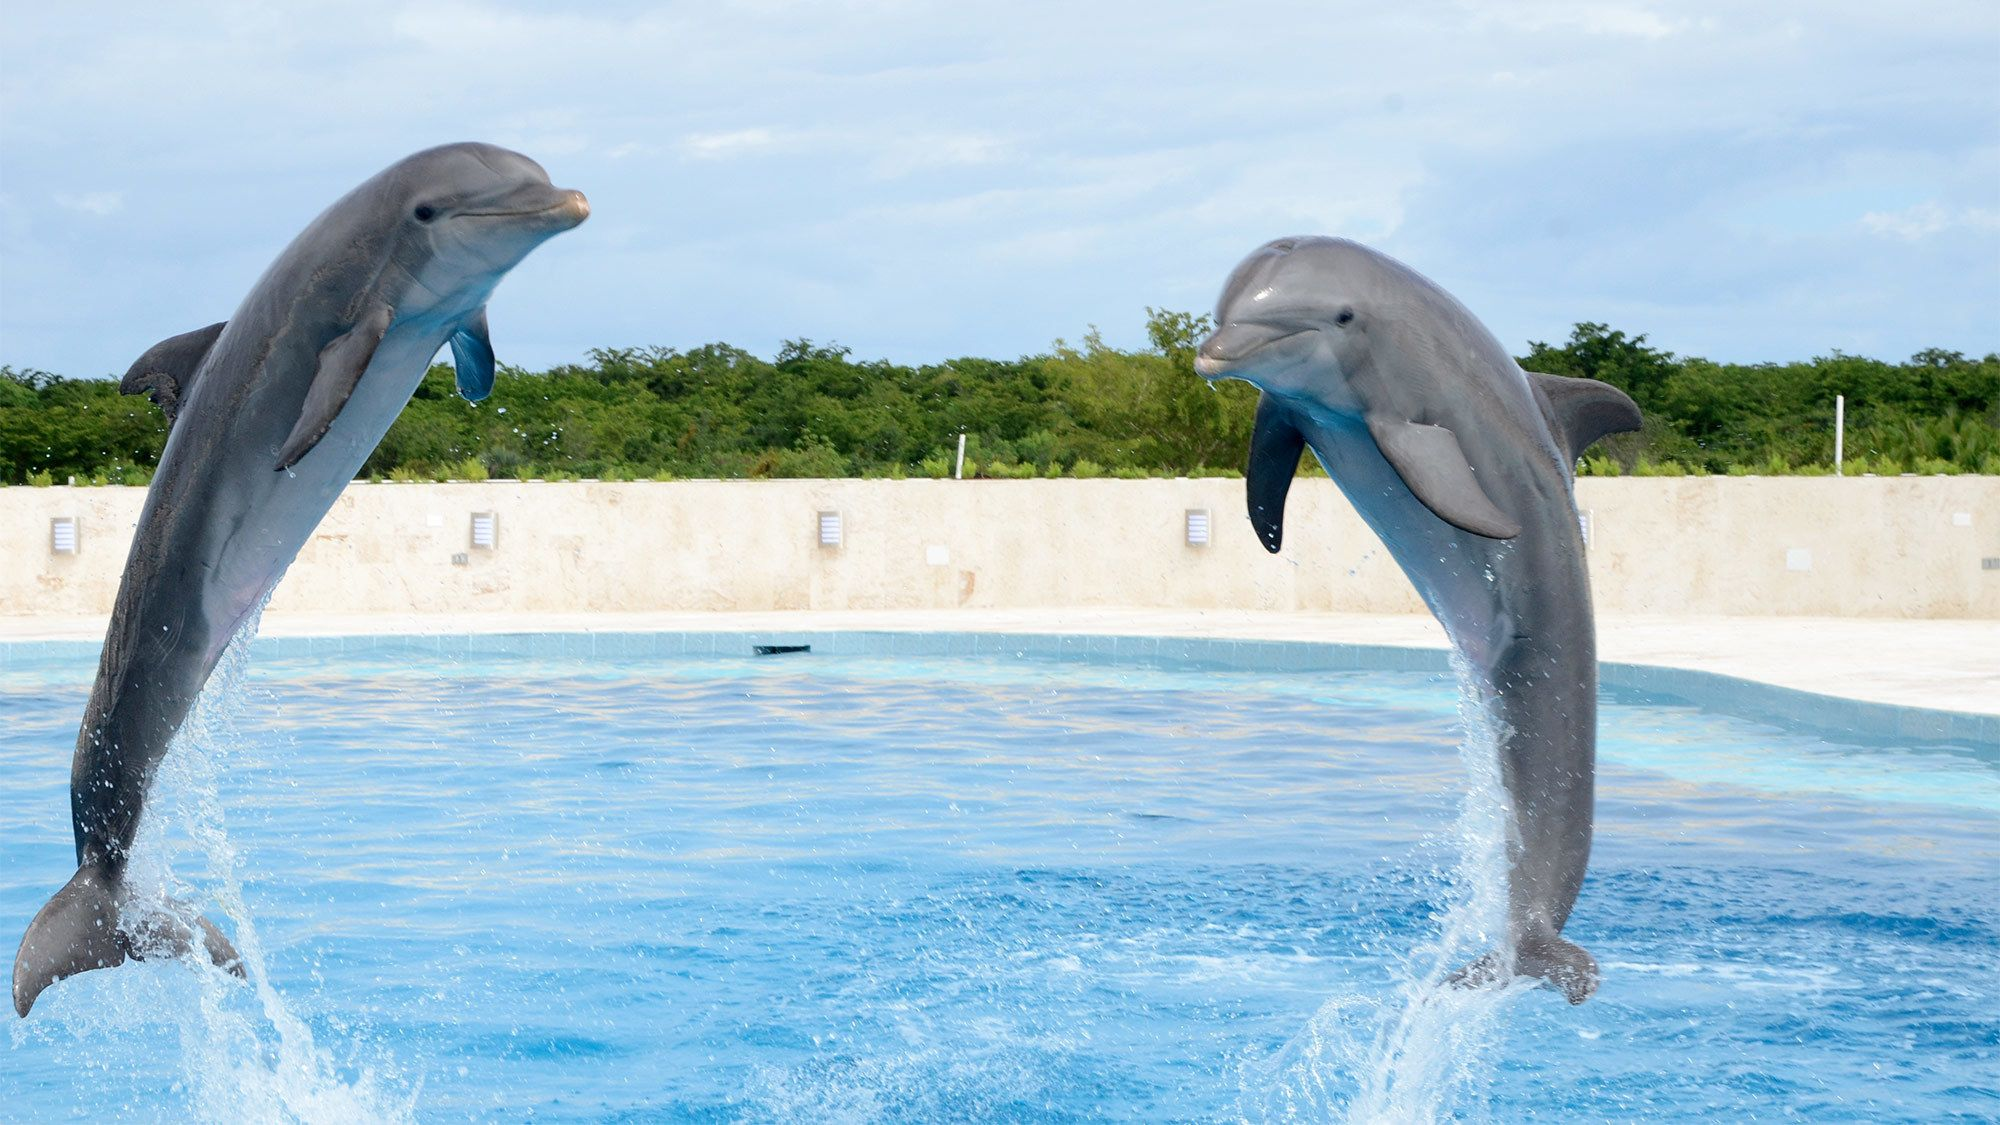 Two dolphins on the Dolphin Swim Adventure in Punta Cana